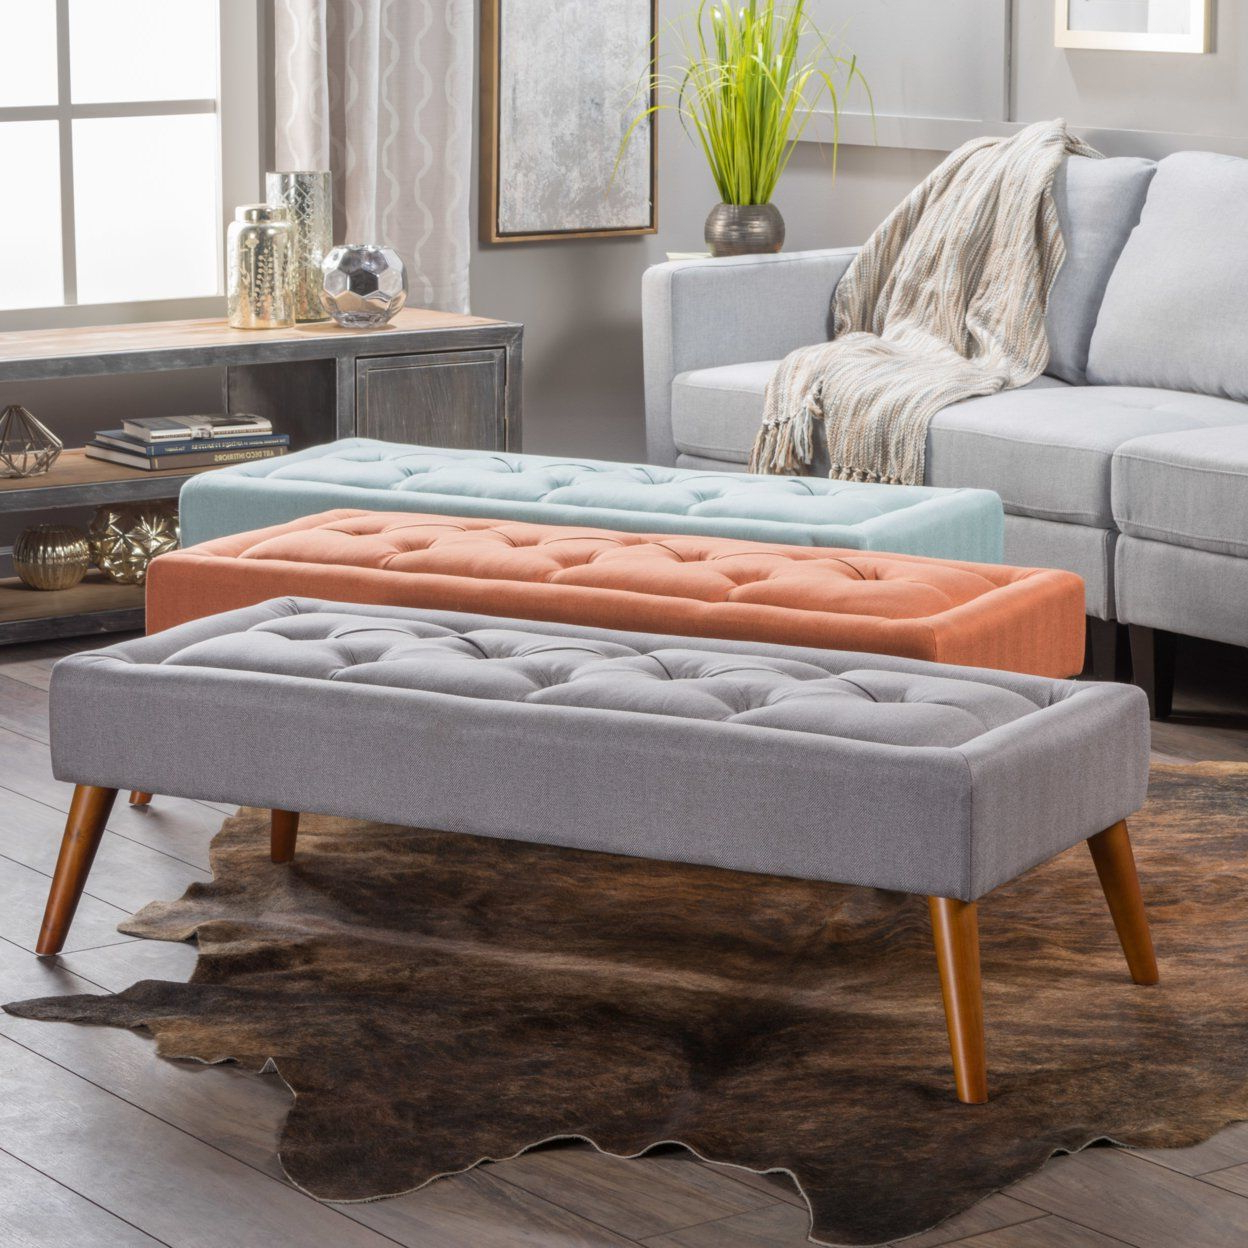 Mid Century Modern Ottoman Bench #home #canvas #art #sale #gifts Pertaining To Recent Elba Ottoman Coffee Tables (View 15 of 20)